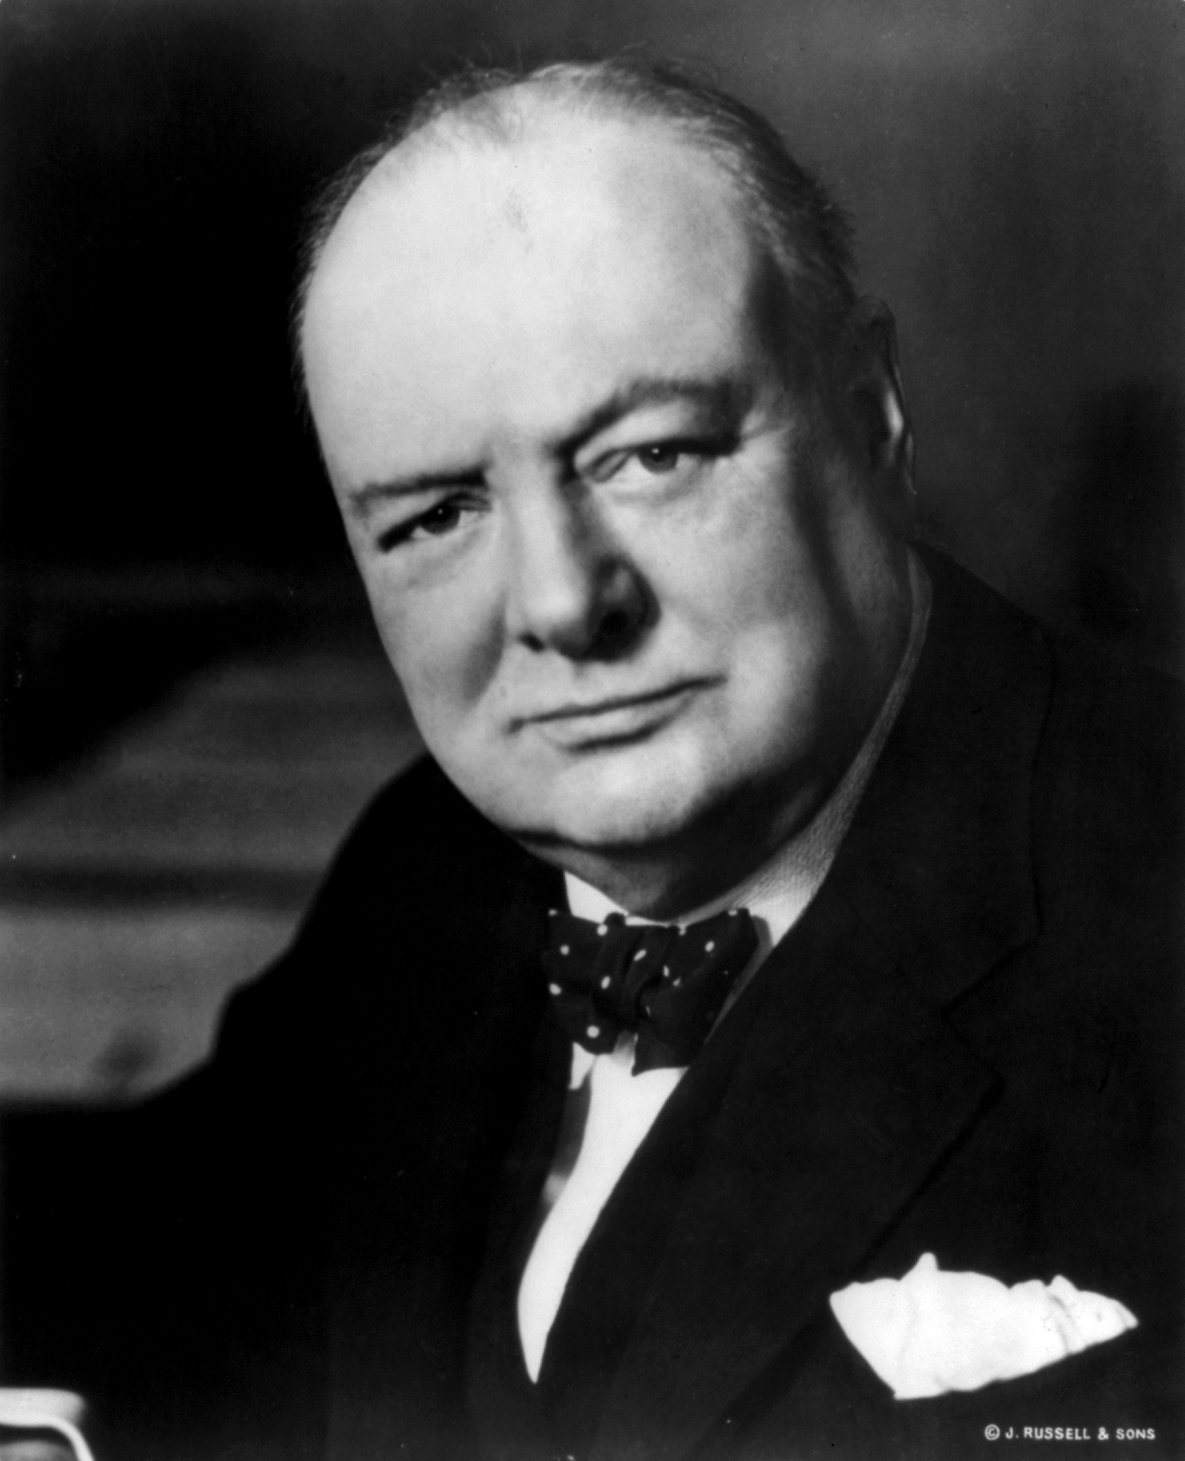 Former Prime Minister Winston Churchill inscribing an antique pocket watch- Pieces of Time